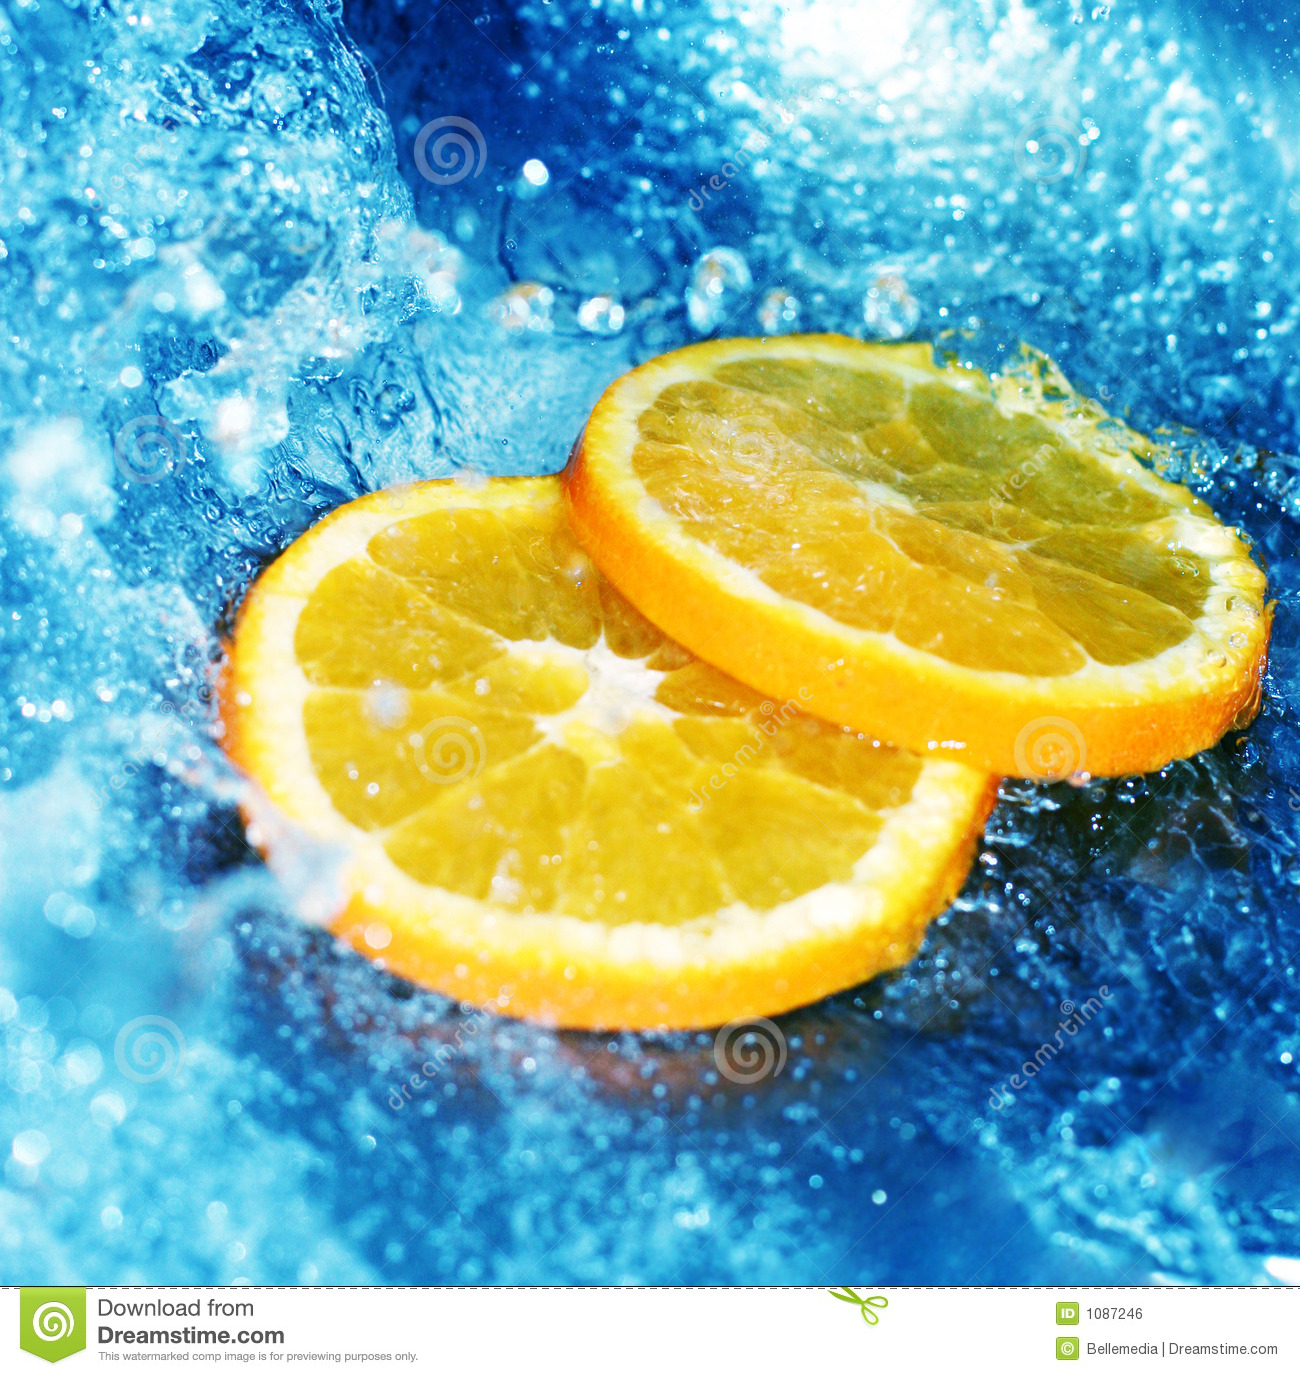 Jun 13,  · Simply combine the orange slices, vanilla and water in a large pitcher, and mix well. Allow to infuse in the fridge for at least an hour, then keep chilled in /5(12).